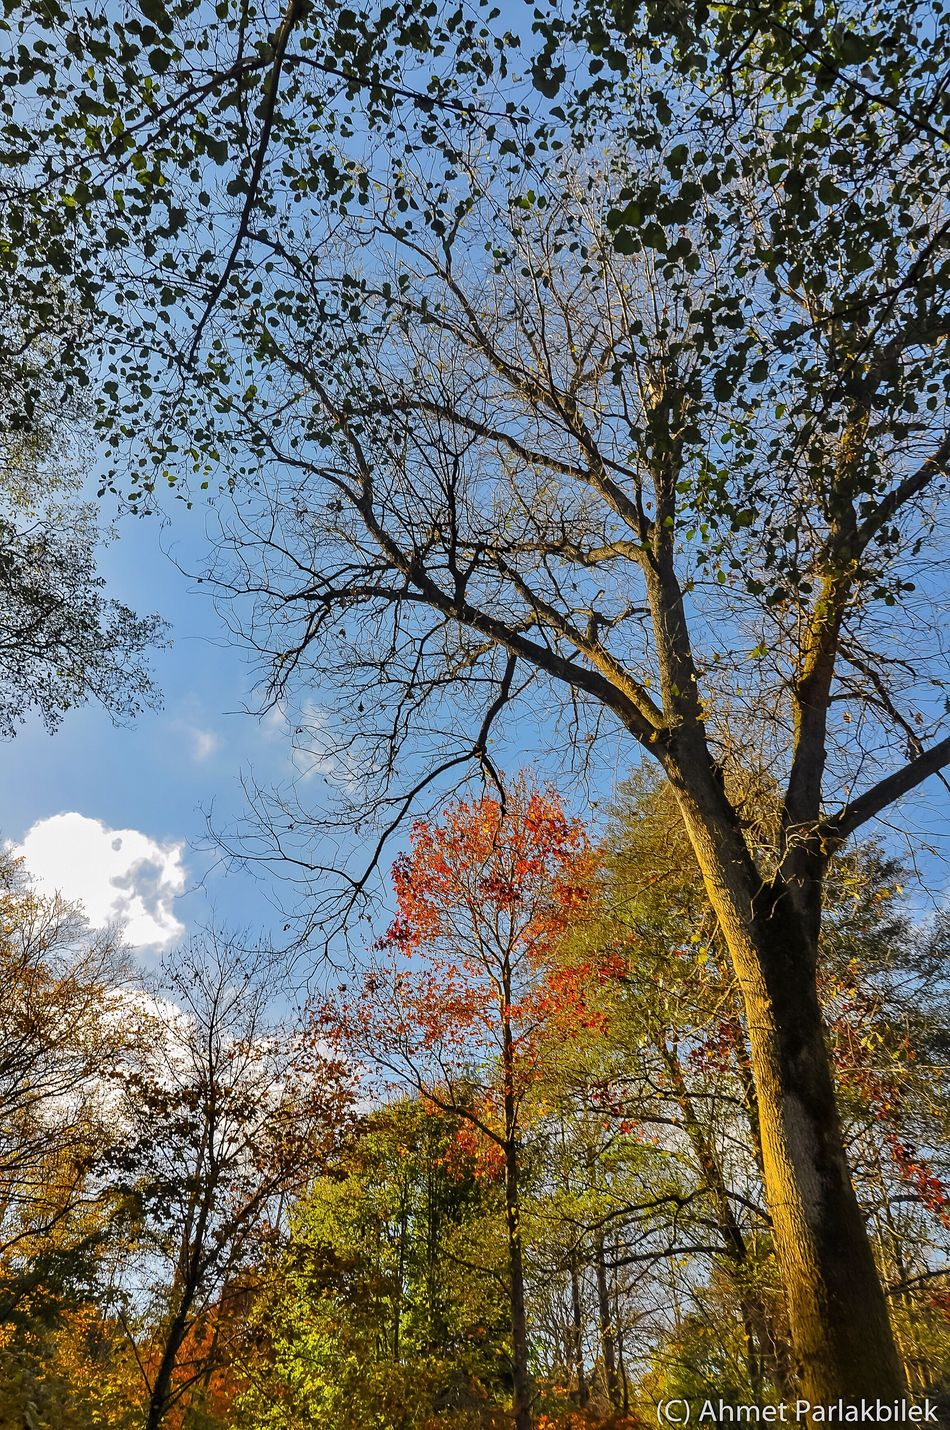 Tree Low Angle View Branch Sky Nature Beauty In Nature Growth Outdoors Tranquility Autumn No People Cloud - Sky Day